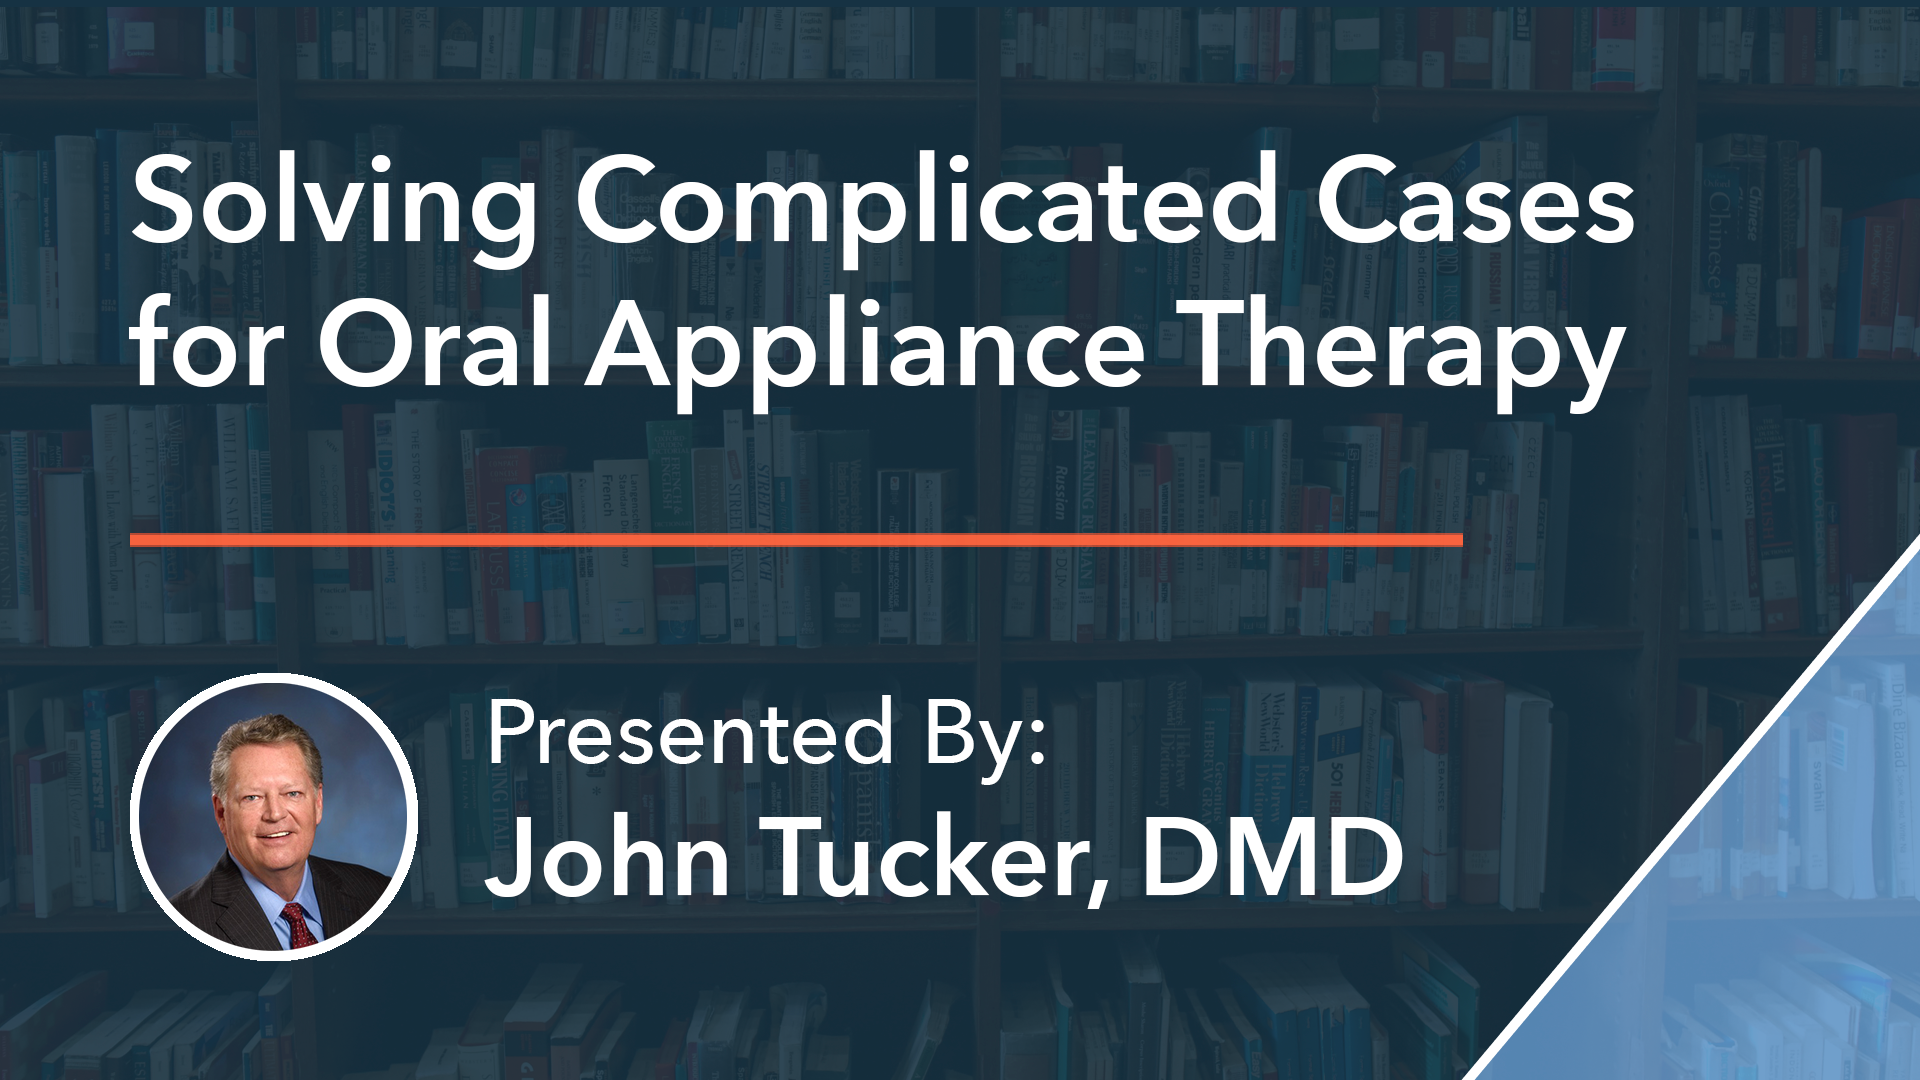 Solving Complicated Cases for Oral Appliance Therapy Dr John Tucker